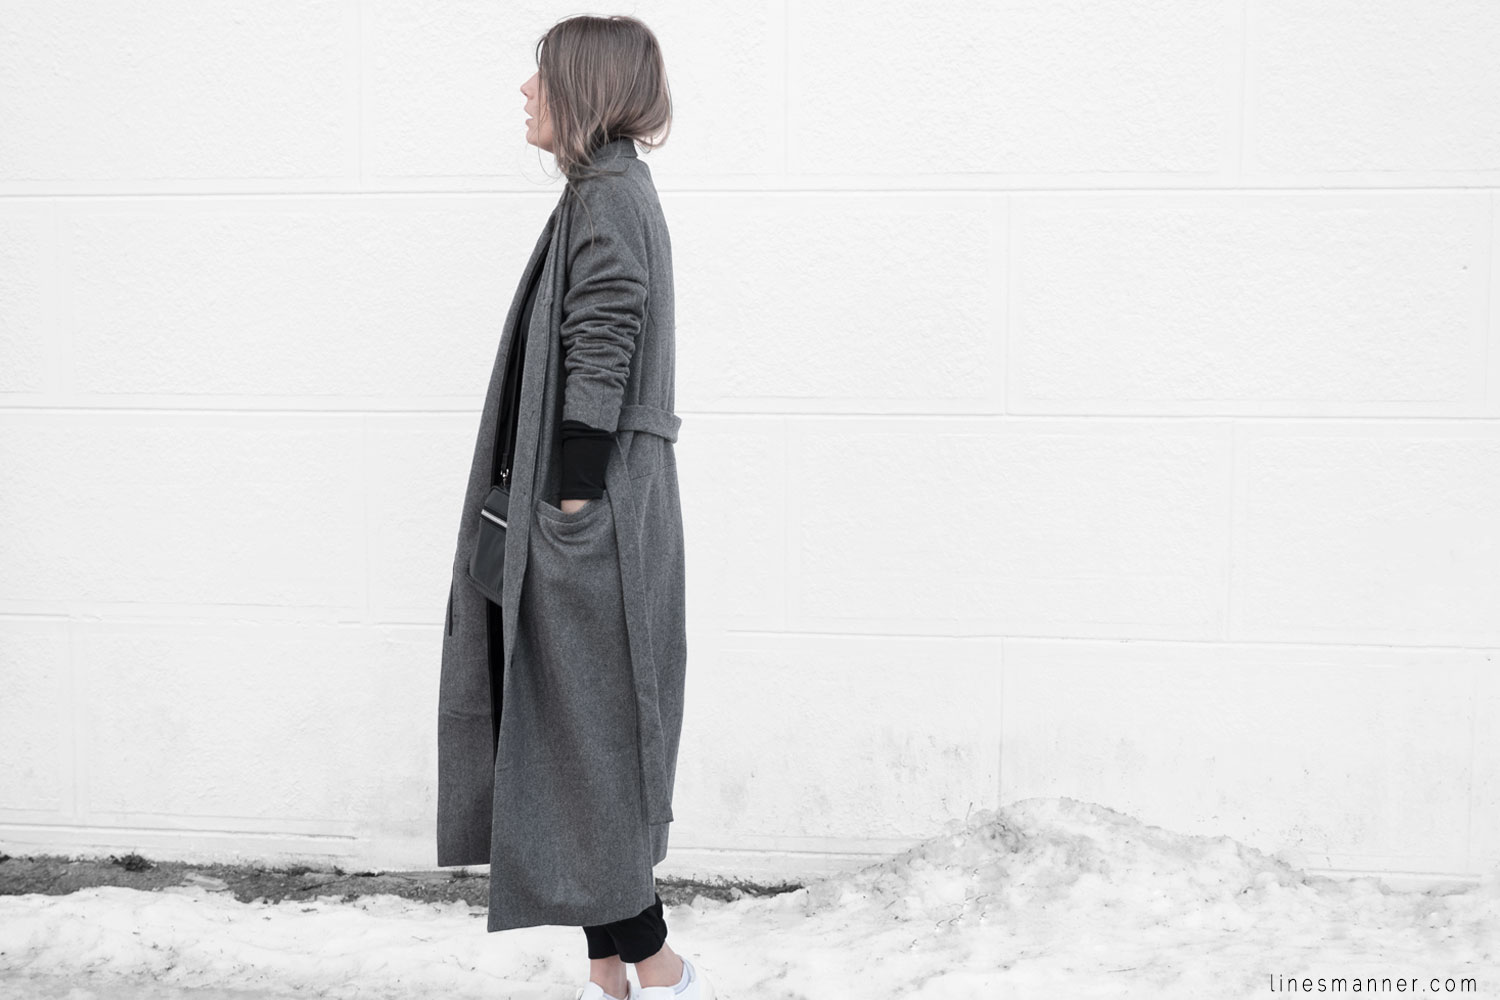 Lines-Manner-Simplicity-Neutral-Palette-Functional-Versatile-Timeless-Grey-Winter_Coat-Details-Essentials-Minimal-Basics-5